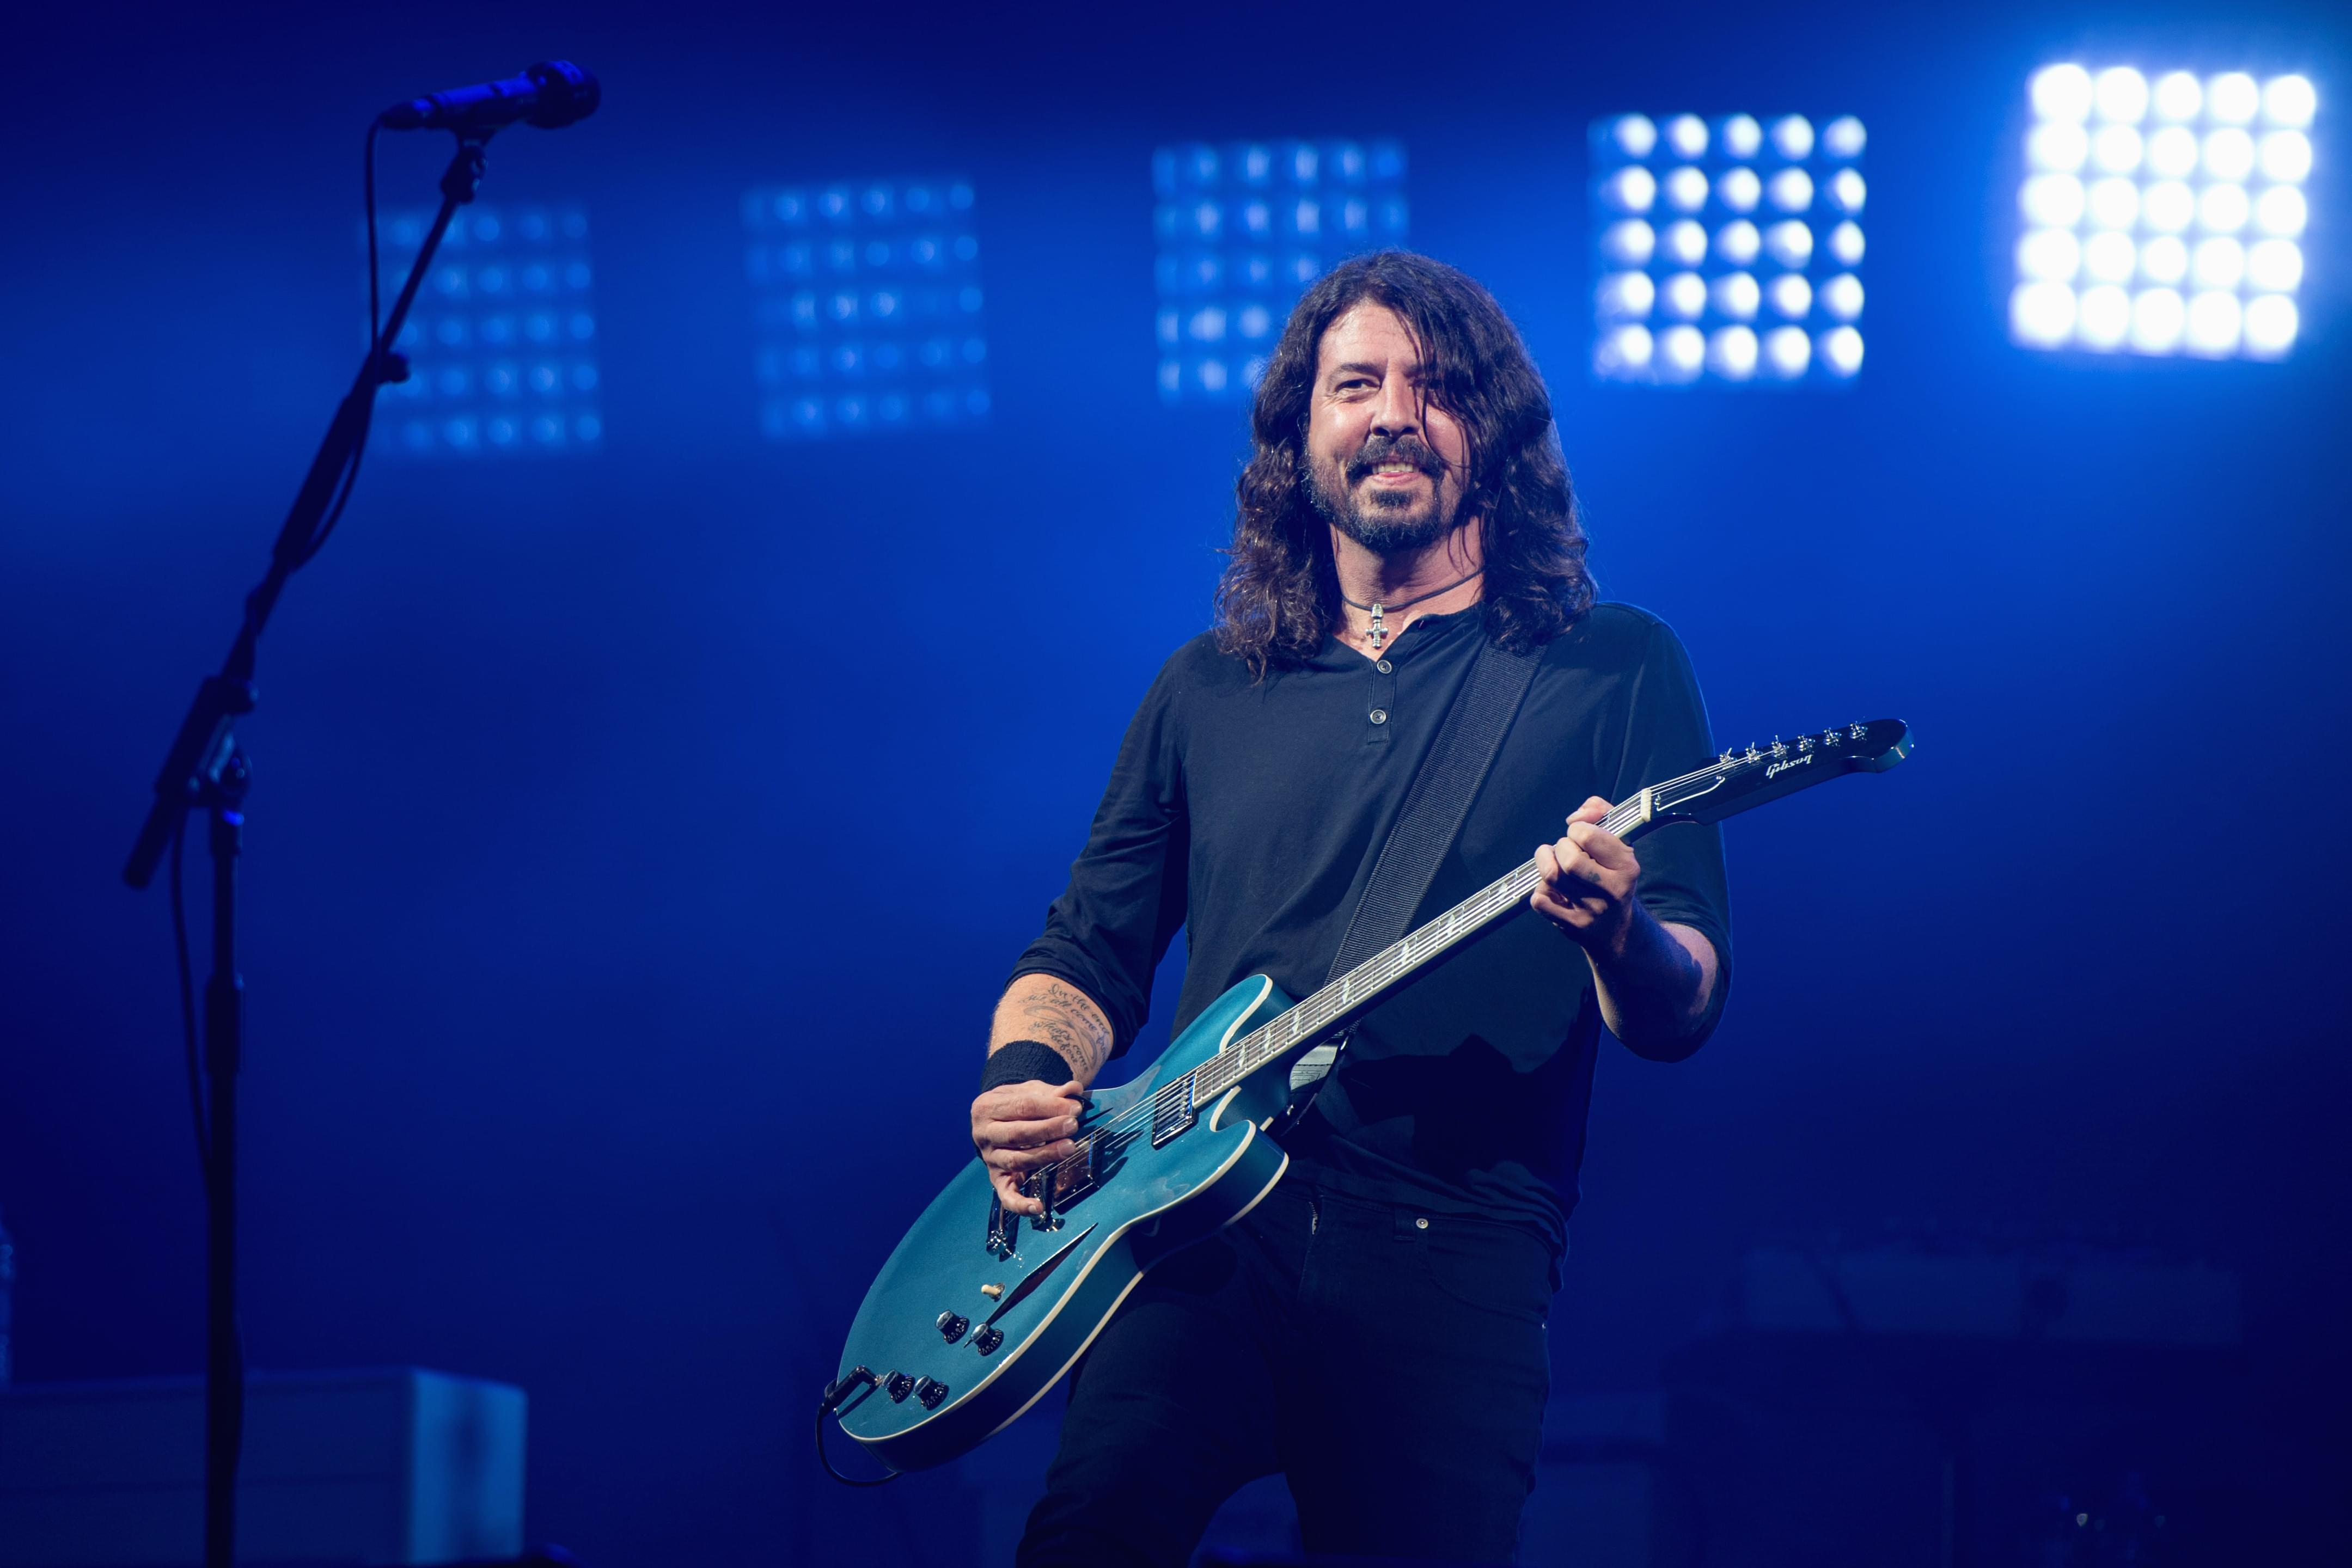 Watch the Trailer for 'From Cradle to Stage' Starring Dave Grohl and His Mom [VIDEO]